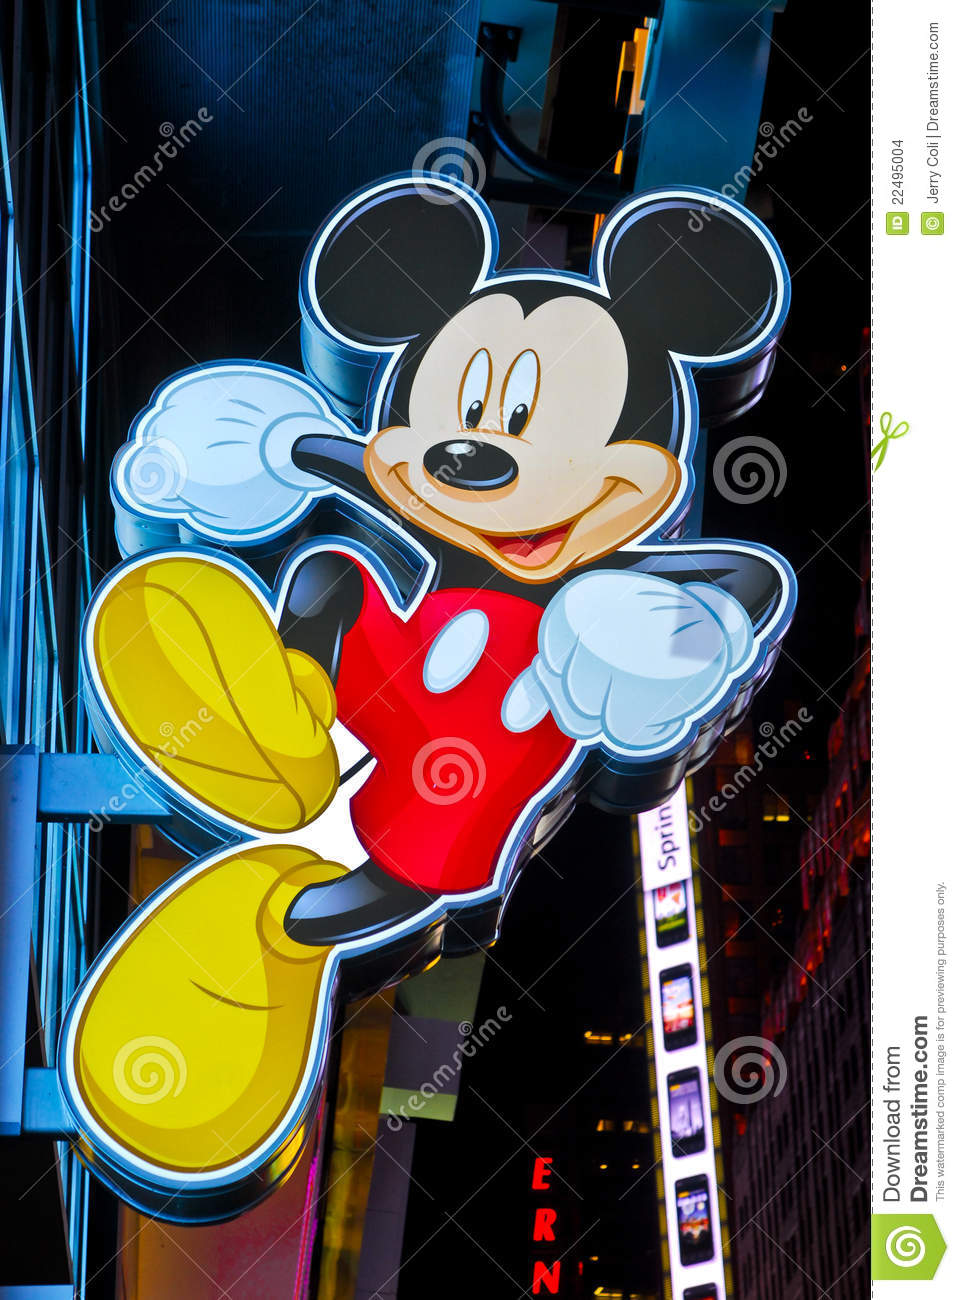 Mickey mouse sign at times square disney store editorial stock image image 22495004 - Disney store mickey mouse ...